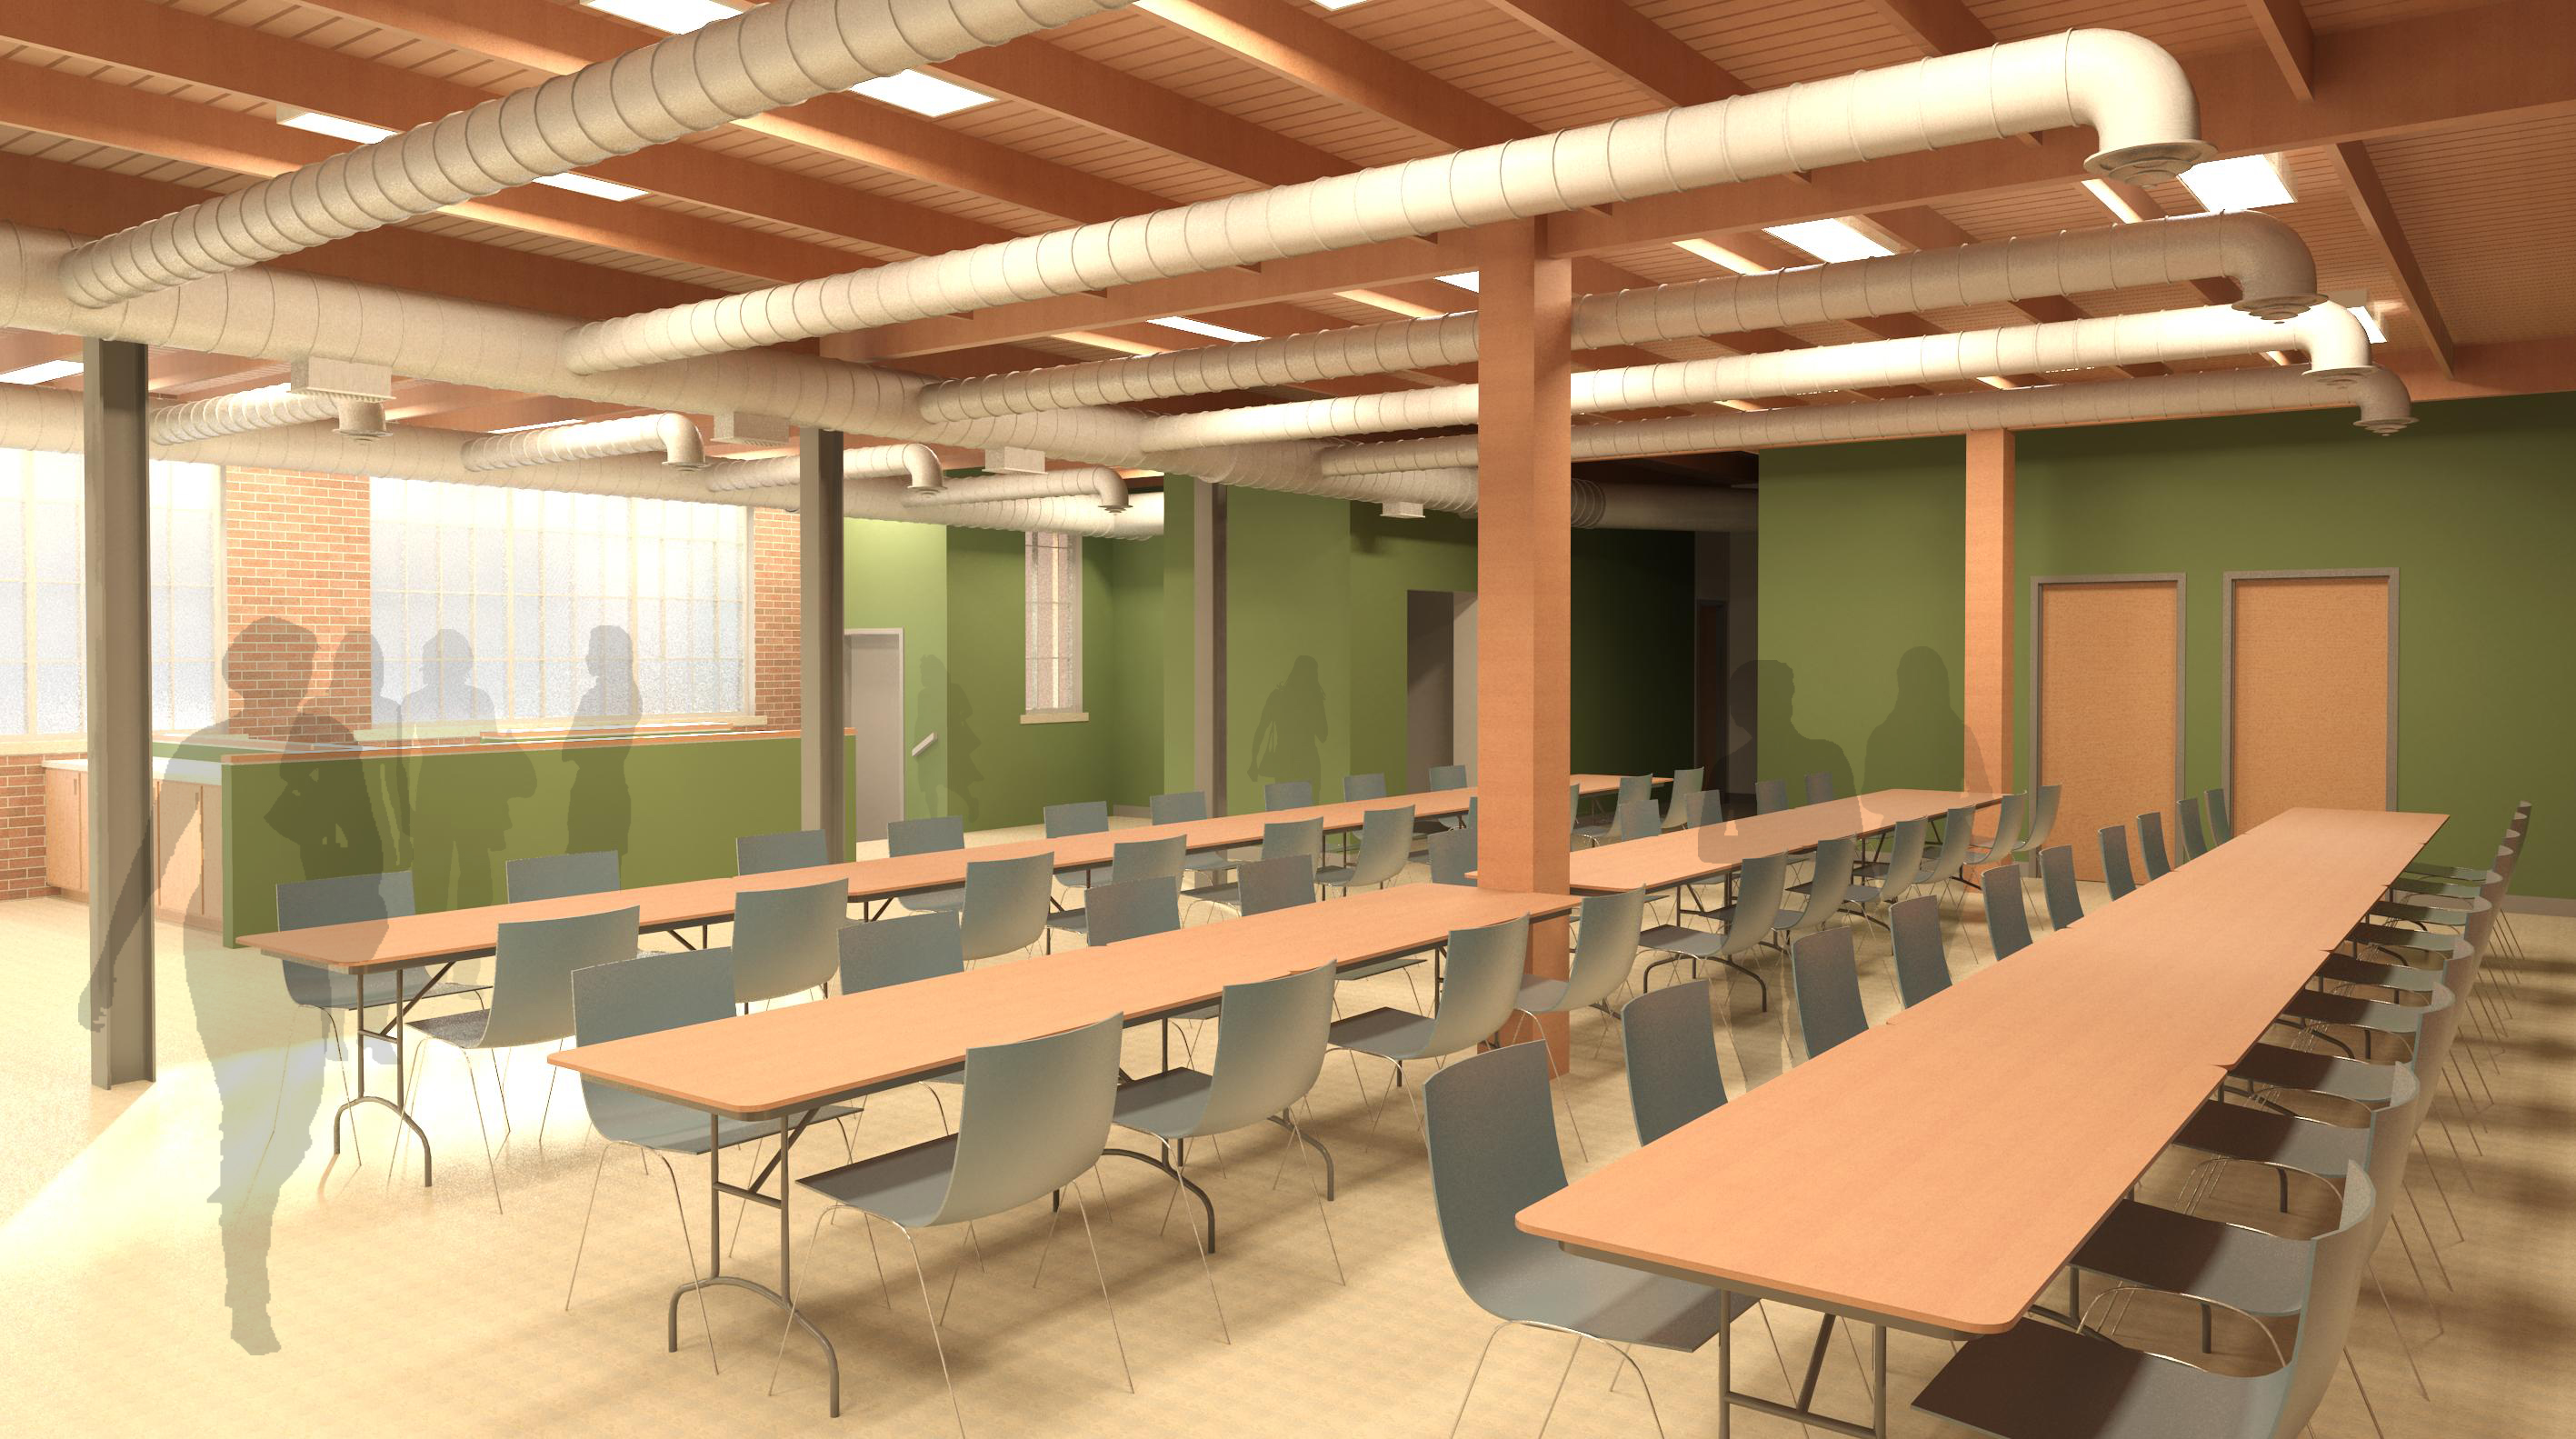 08-118_cafeteria perspective